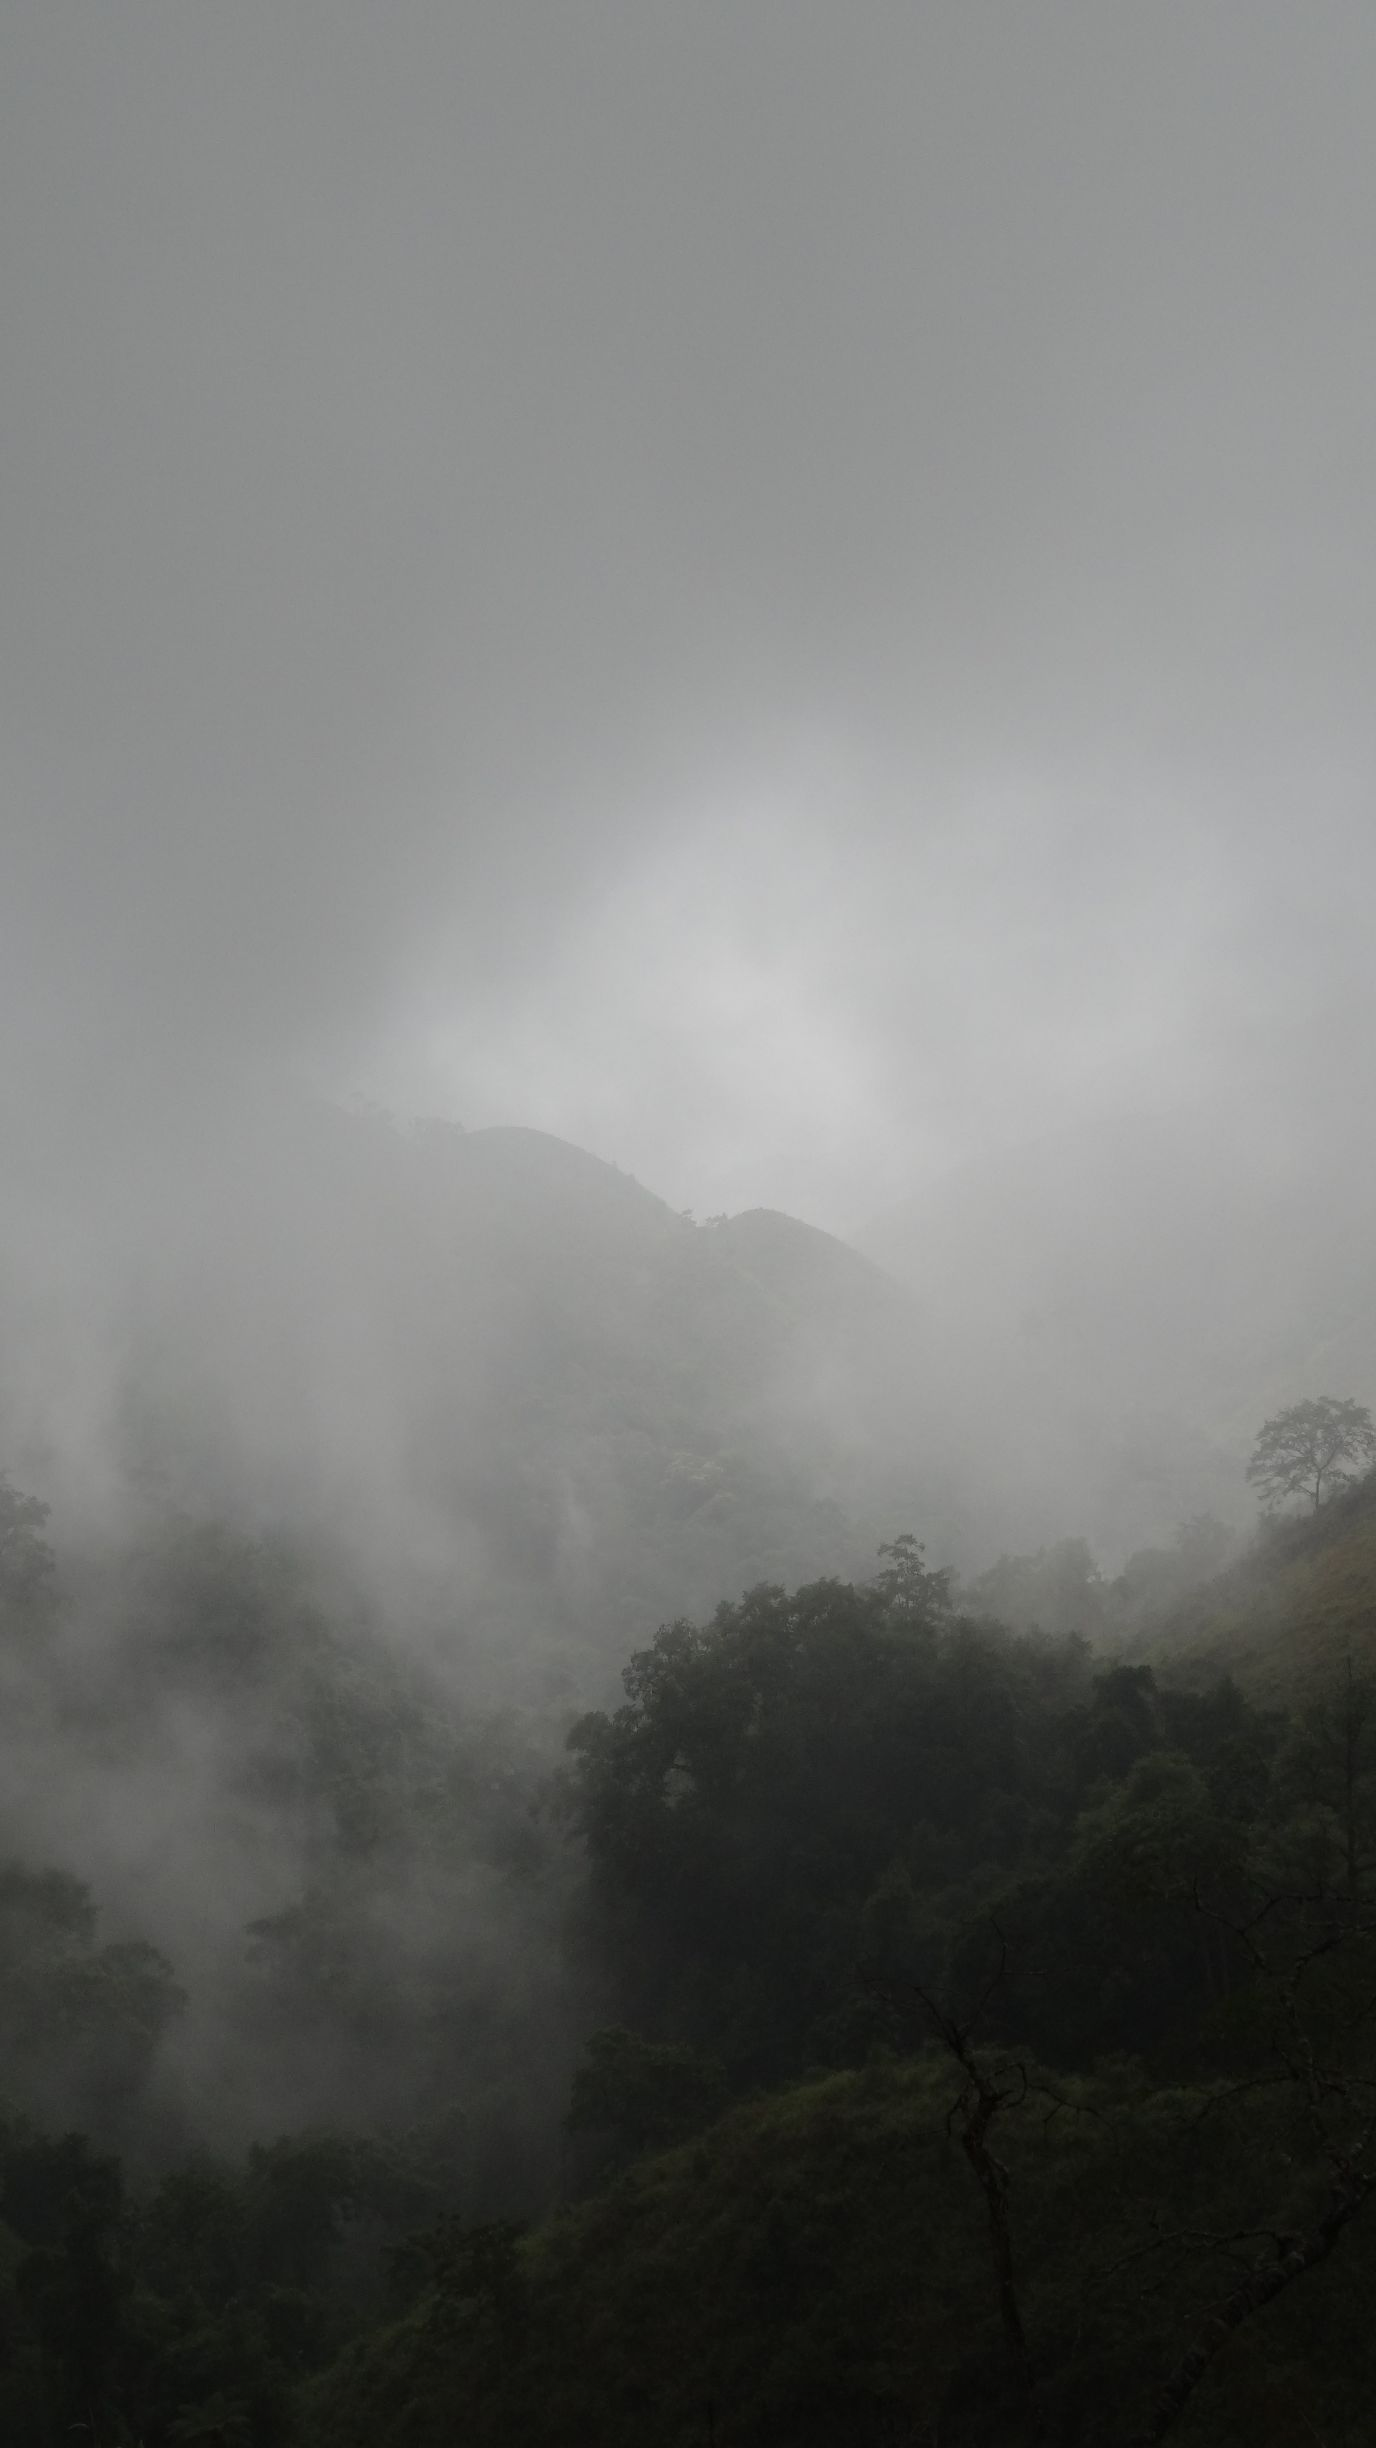 beautiful fog in the mountains, a bit difficult for the driving though